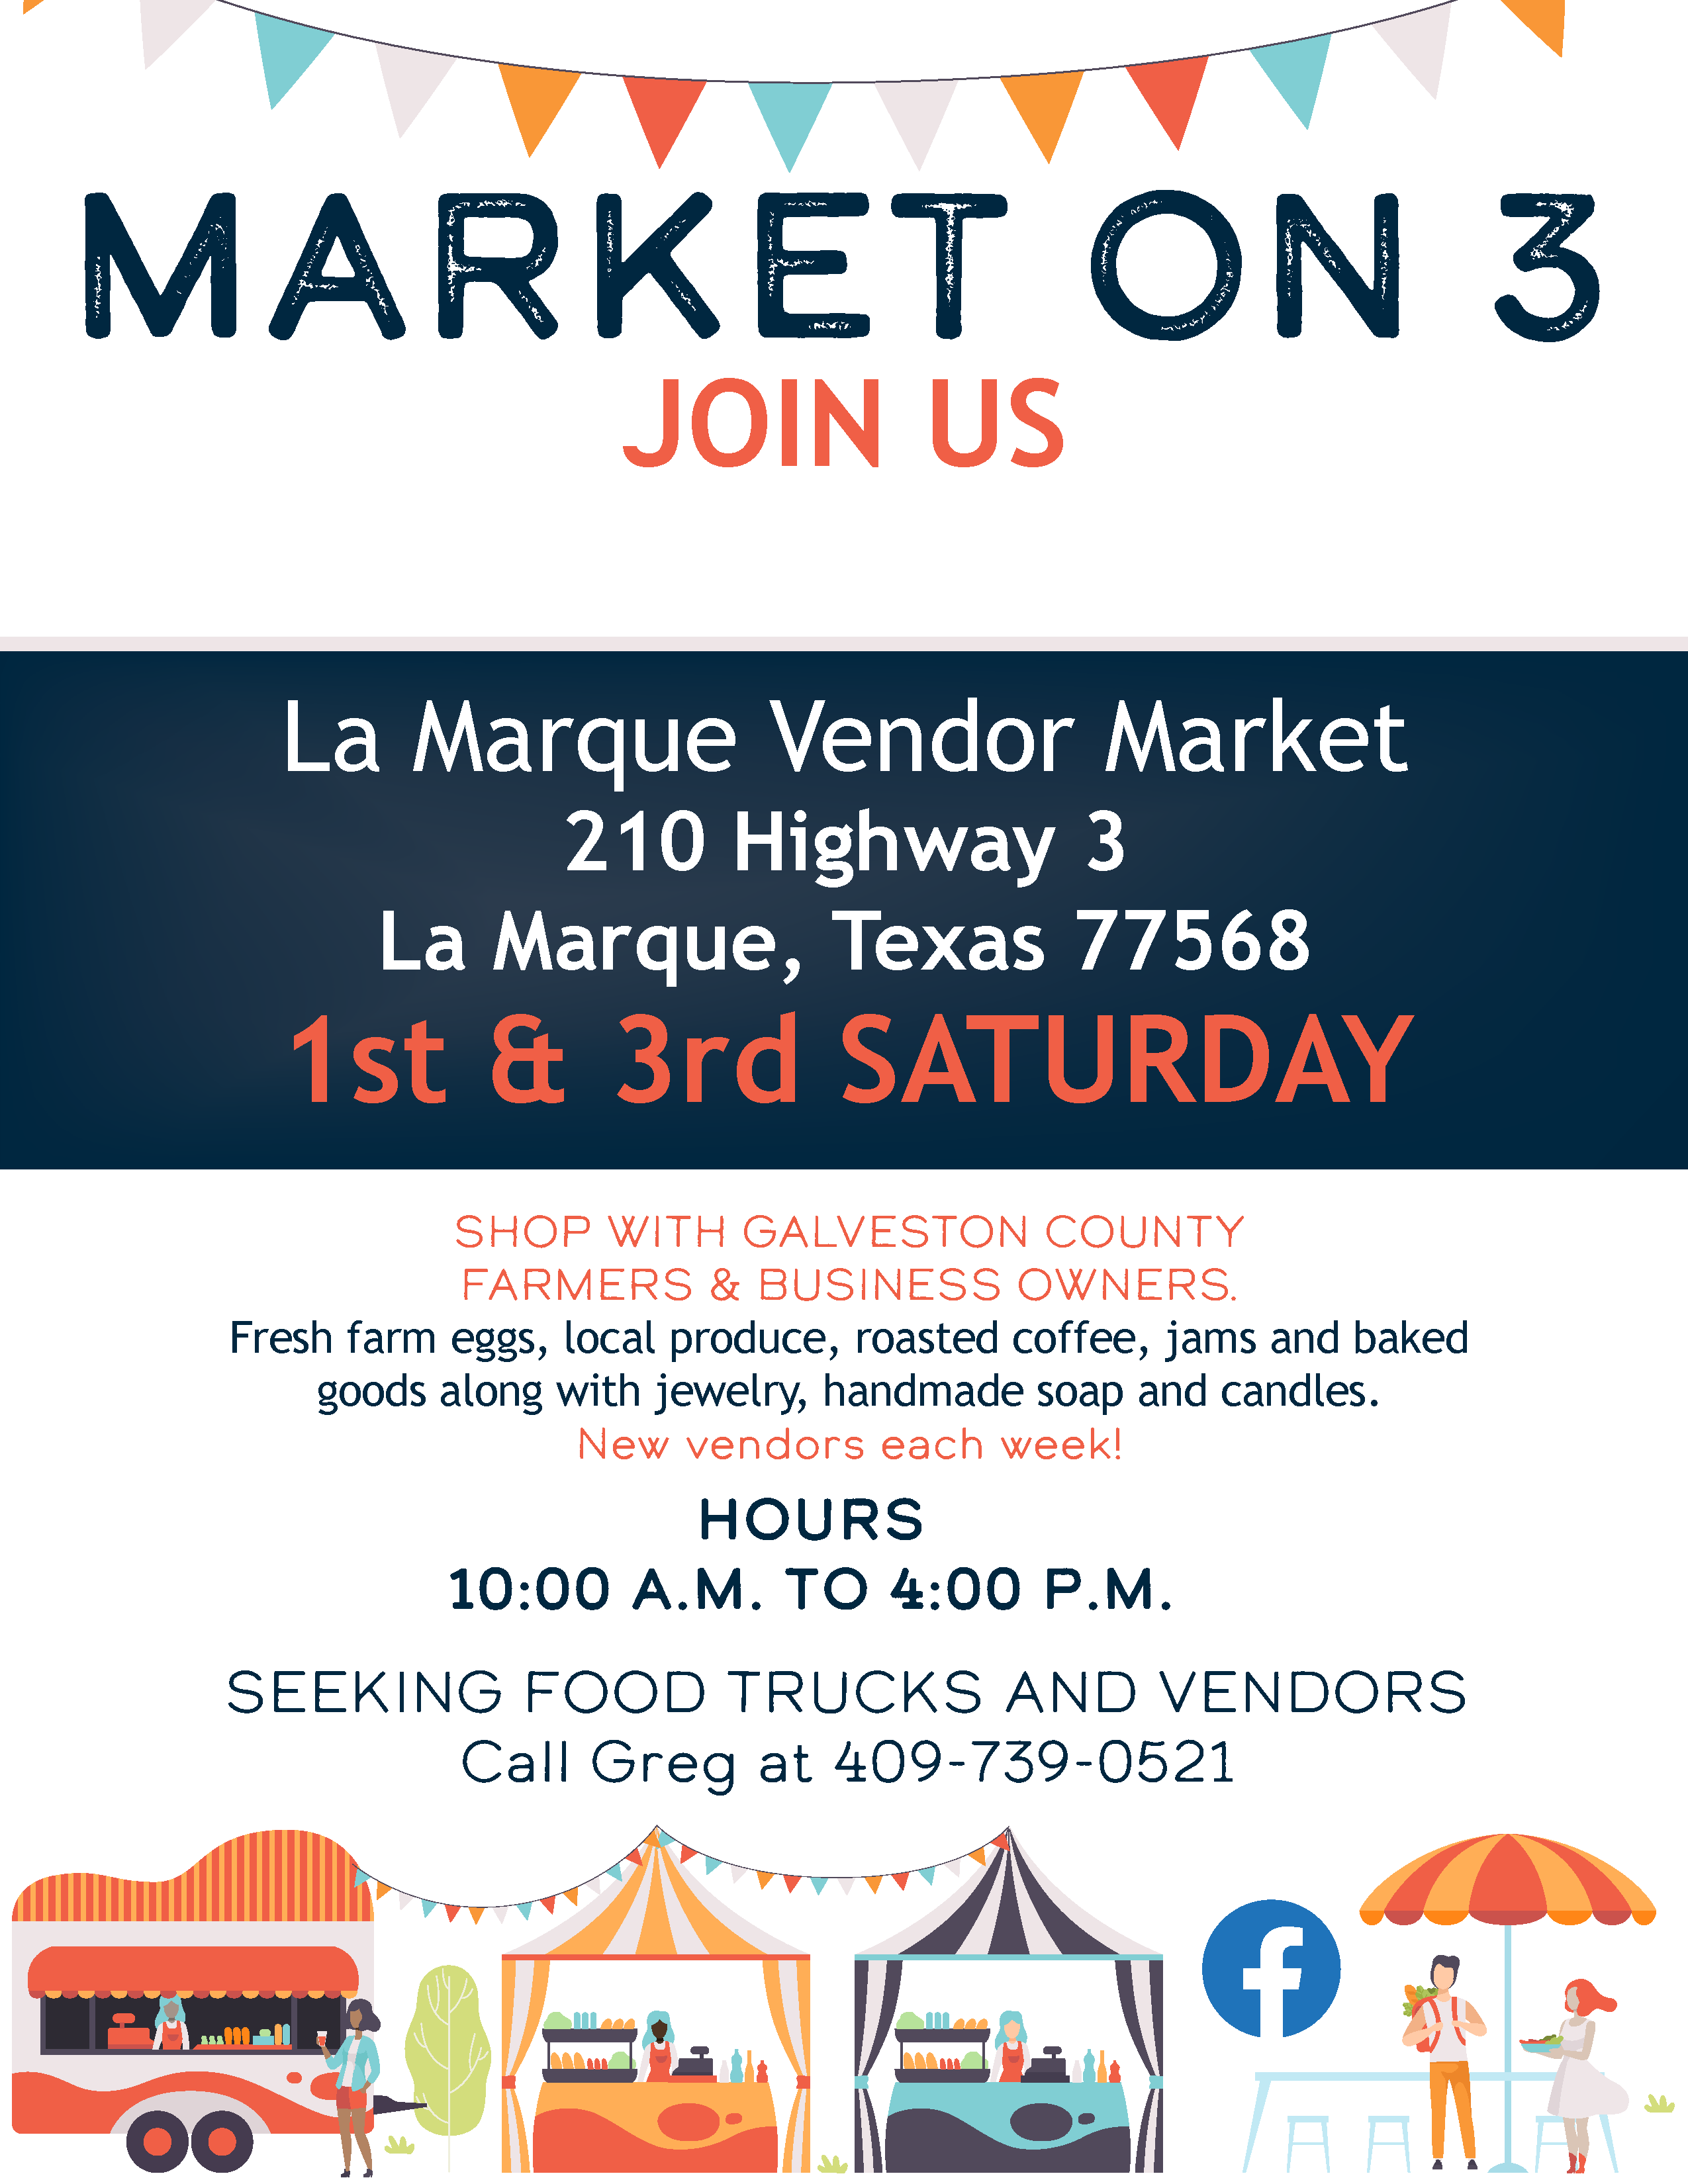 Market on 3 Flyer_Join Us_BLANK